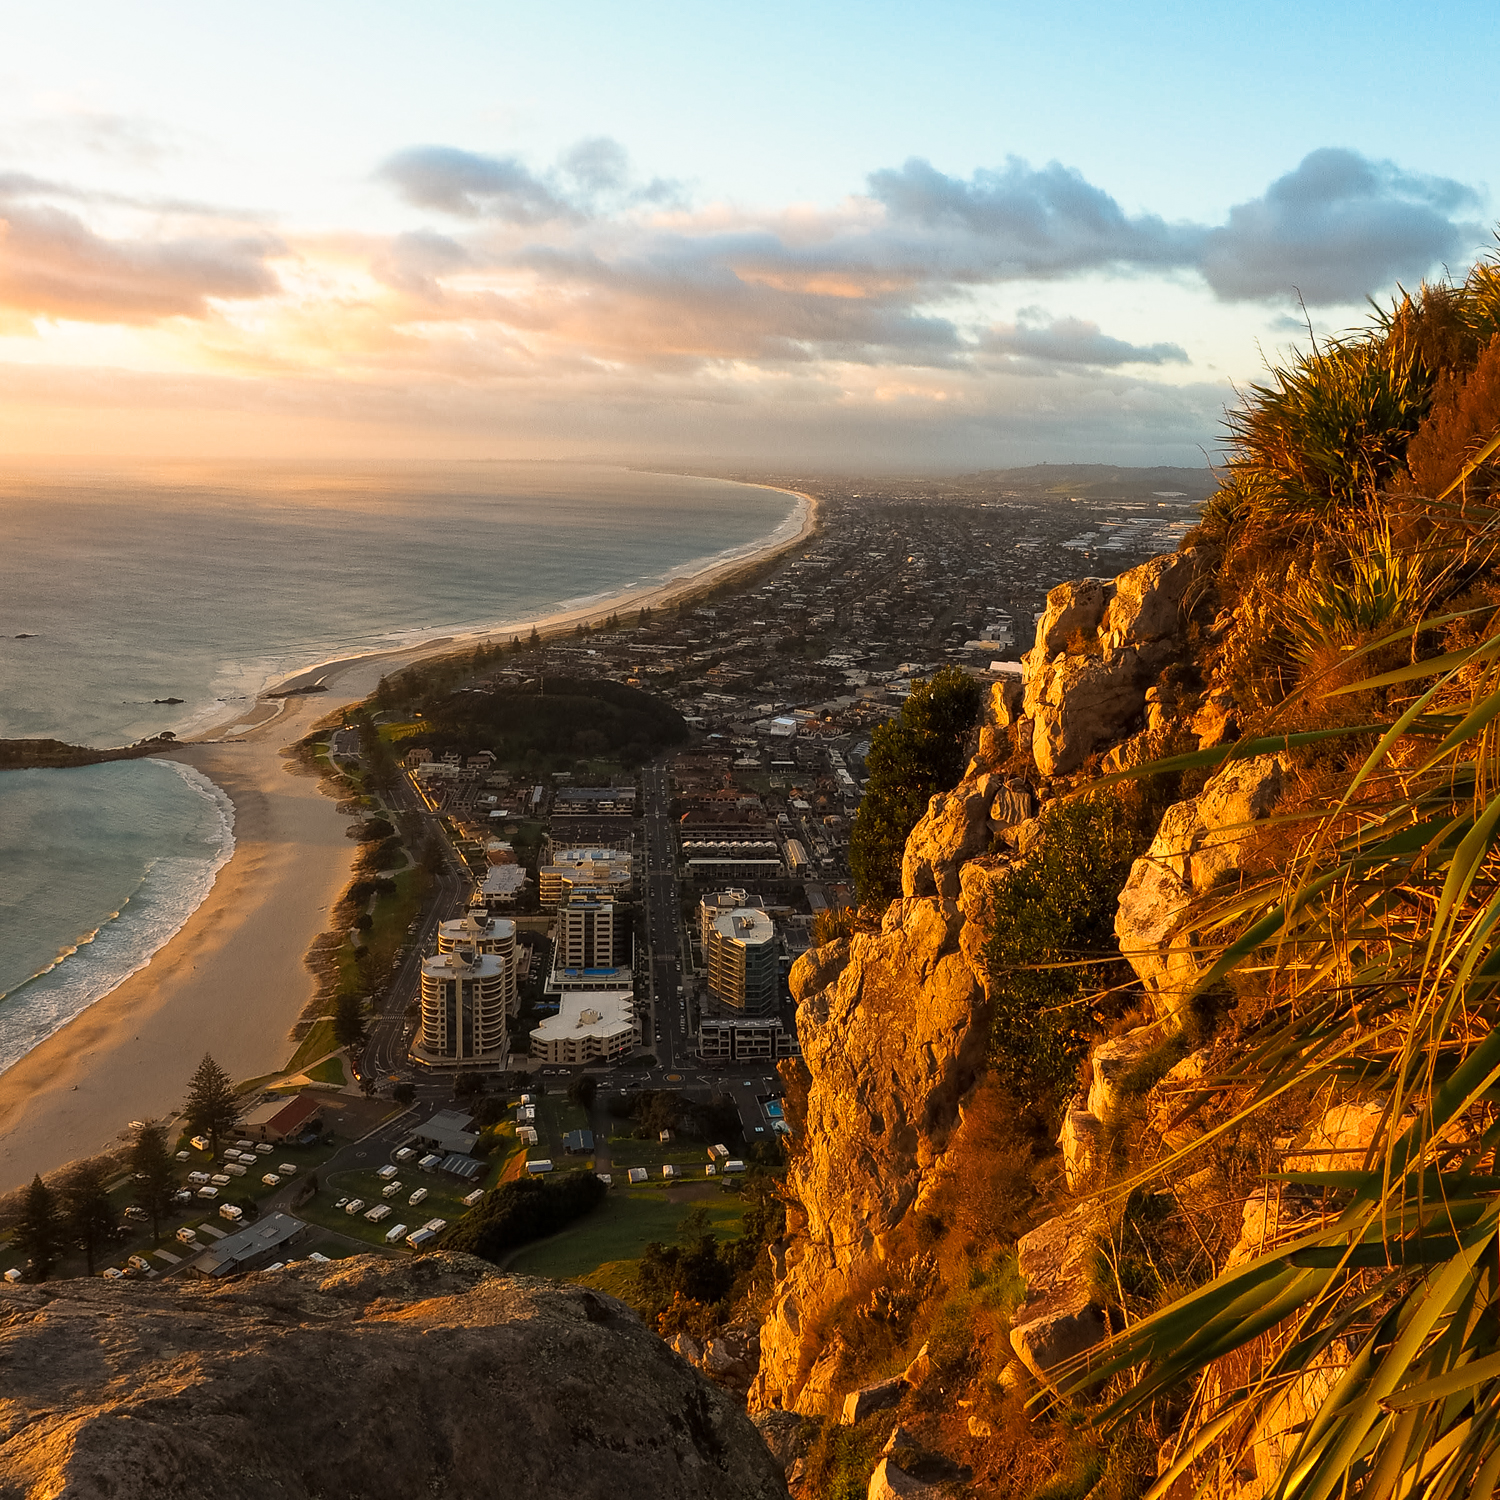 New day in the bay. Sunrise from 230 metres above coastal Mount Maunganui, Tauranga, NZ. 1/160sec, f/13, ISO 1250